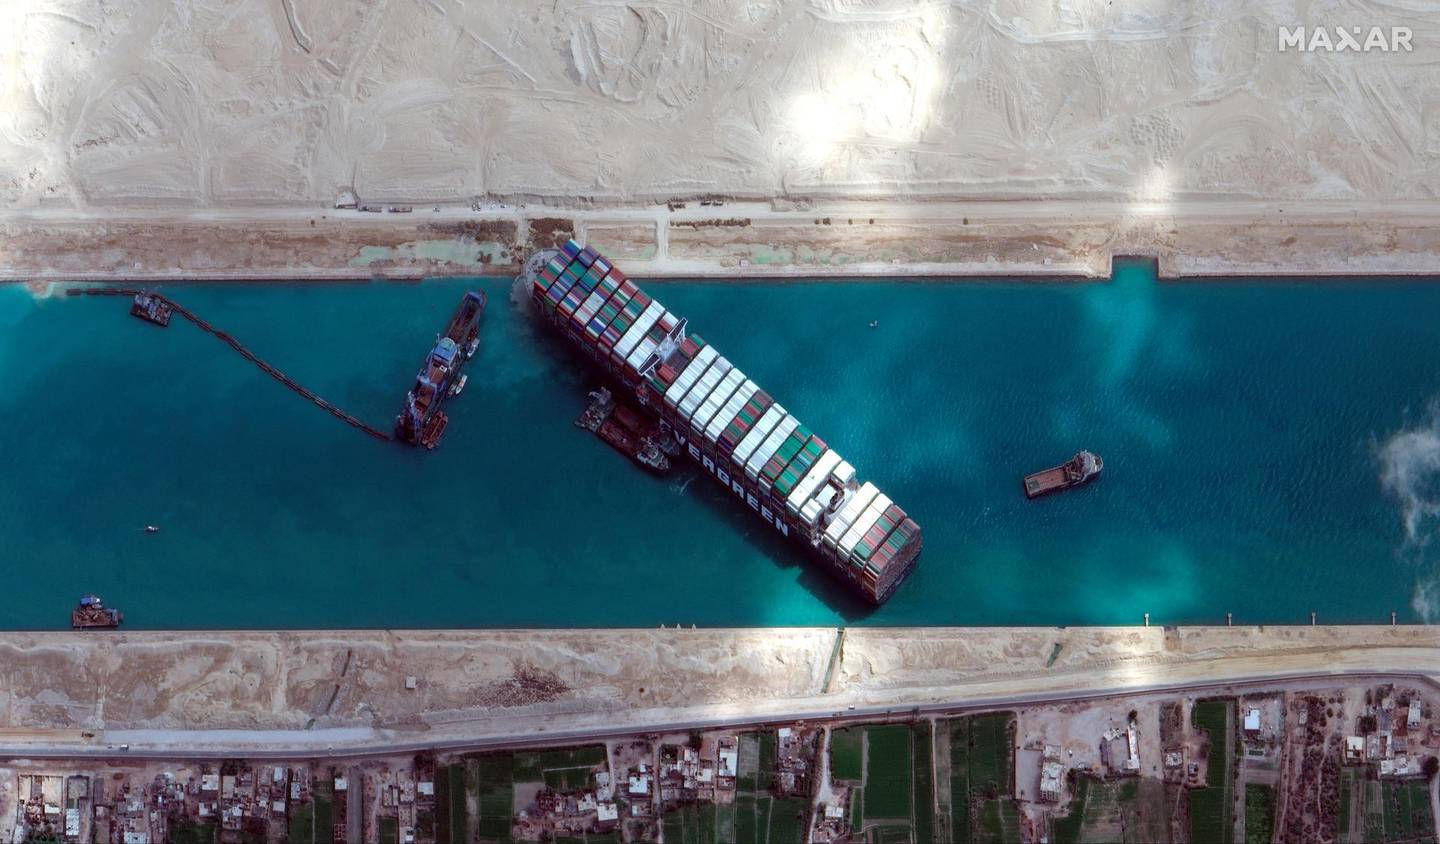 This satellite image from Maxar Technologies shows the cargo ship MV Ever Given stuck in the Suez Canal near Suez, Egypt, Sunday, March 28, 2021. Two additional tugboats sped Sunday to Egypt's Suez Canal to aid efforts to free the skyscraper-sized container ship wedged for days across the crucial waterway, even as major shippers increasingly divert their boats out of fear the vessel may take even longer to free. (©Maxar Technologies via AP)